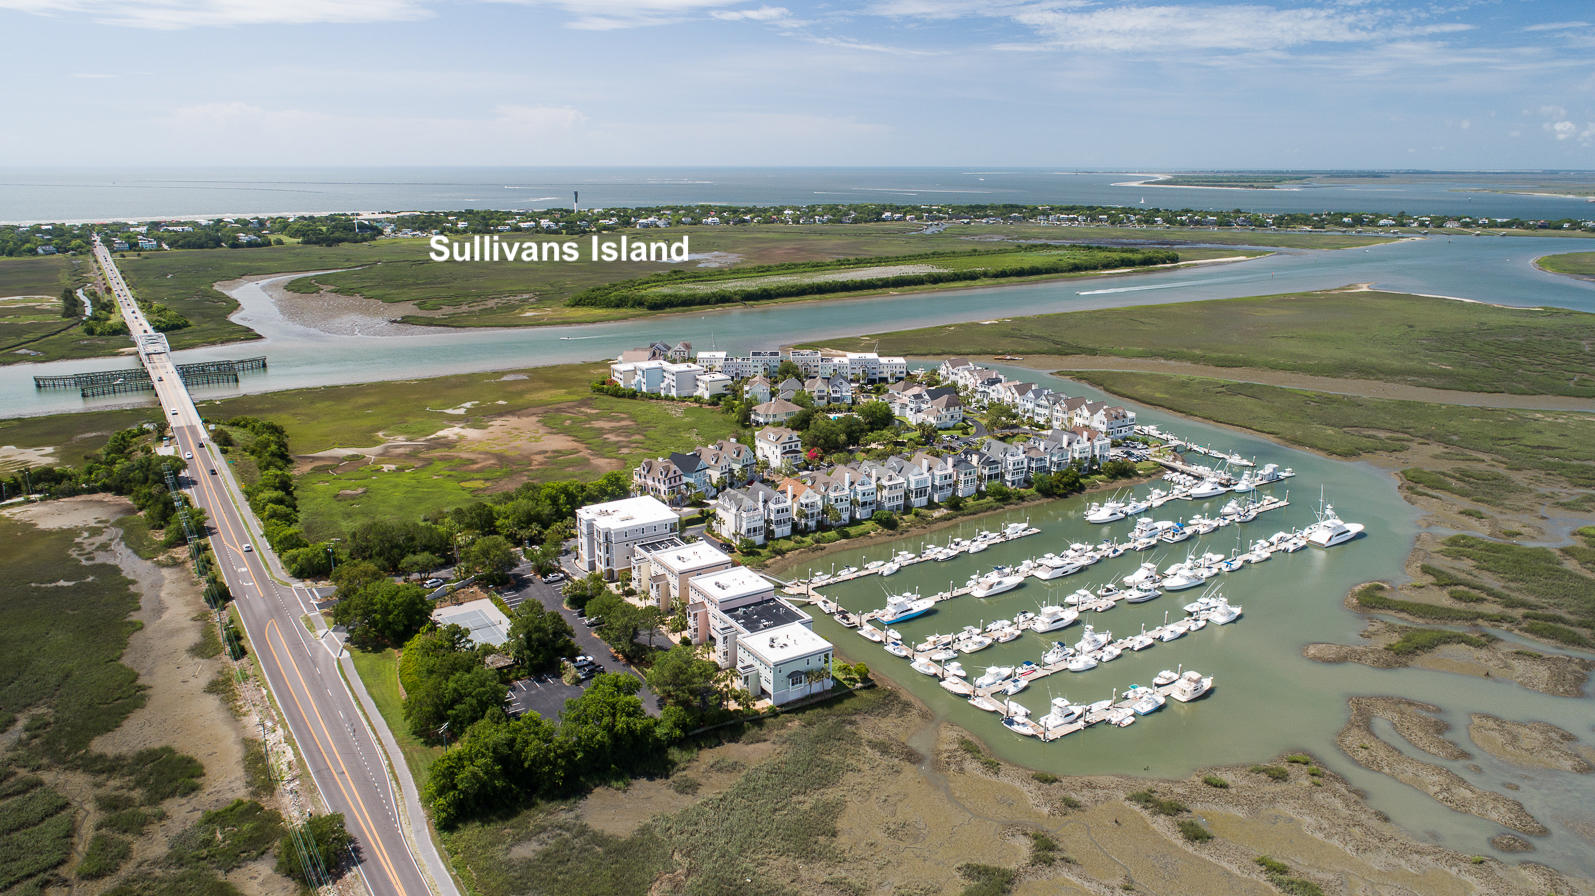 Tolers Cove Homes For Sale - B-4 & B-5 Tolers Cove Marina 70ft + Home, Mount Pleasant, SC - 55